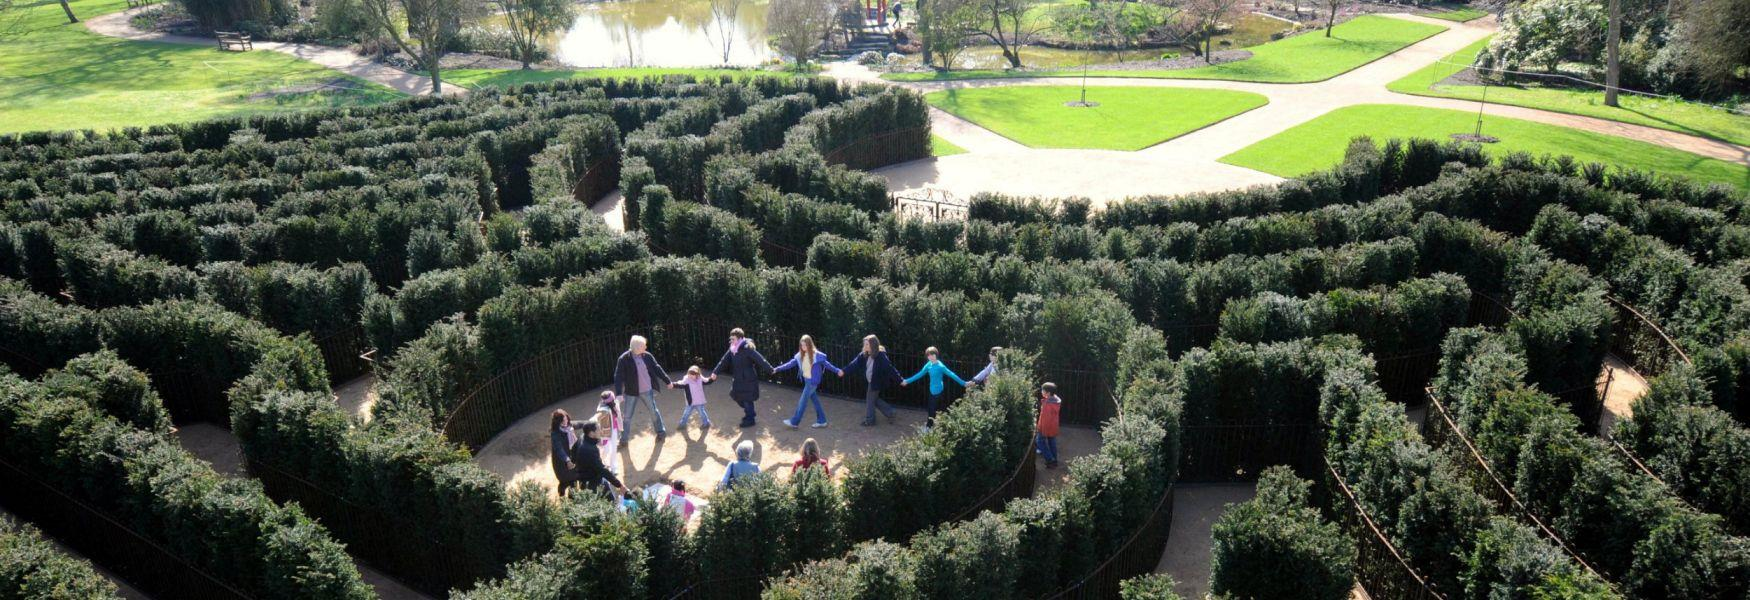 Don't get too puzzled by Cliveden's Maze!